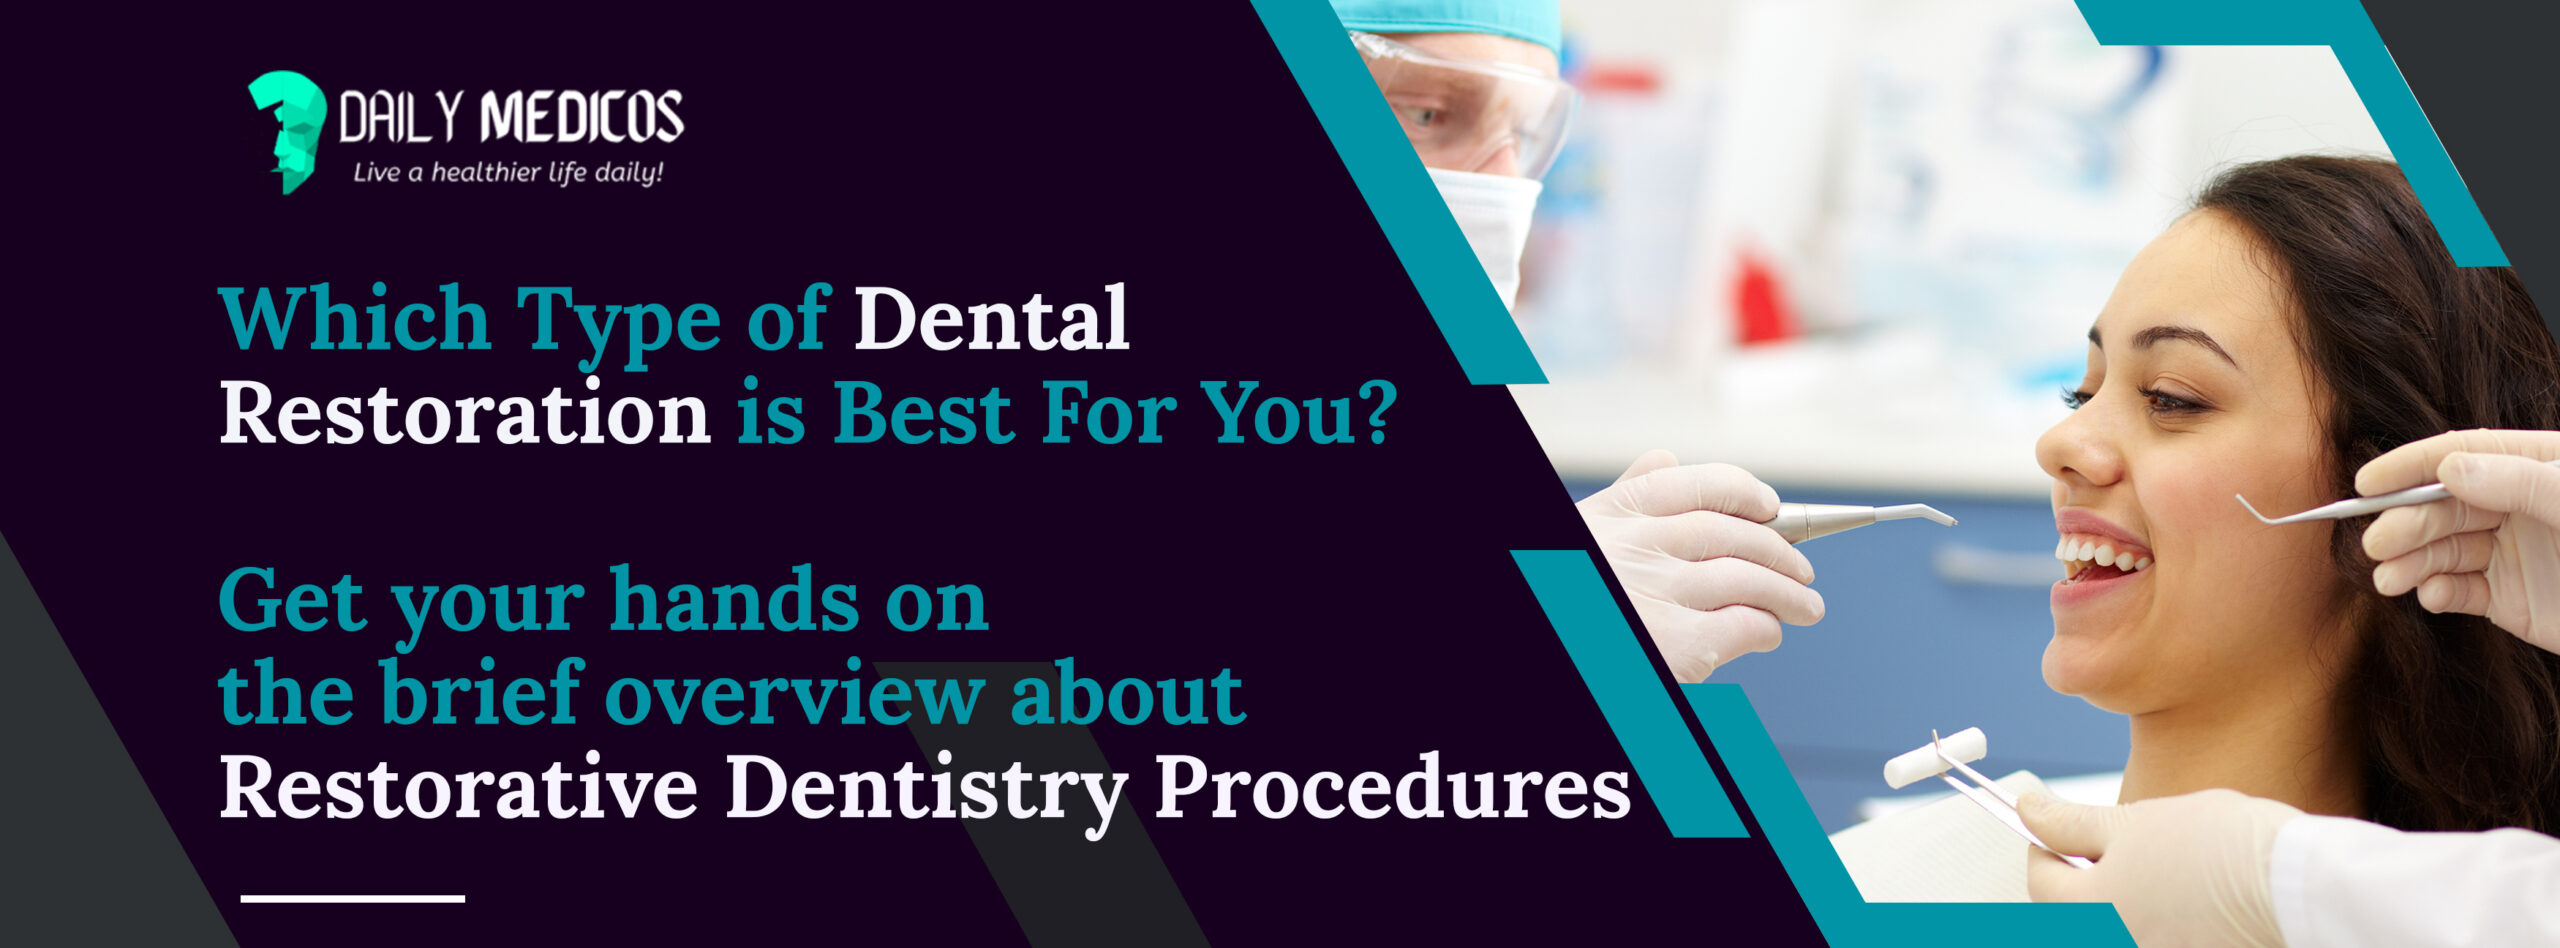 Which Type of Dental Restoration is Best For You? The Brief Overview About Restorative Dentistry Procedures 5 - Daily Medicos